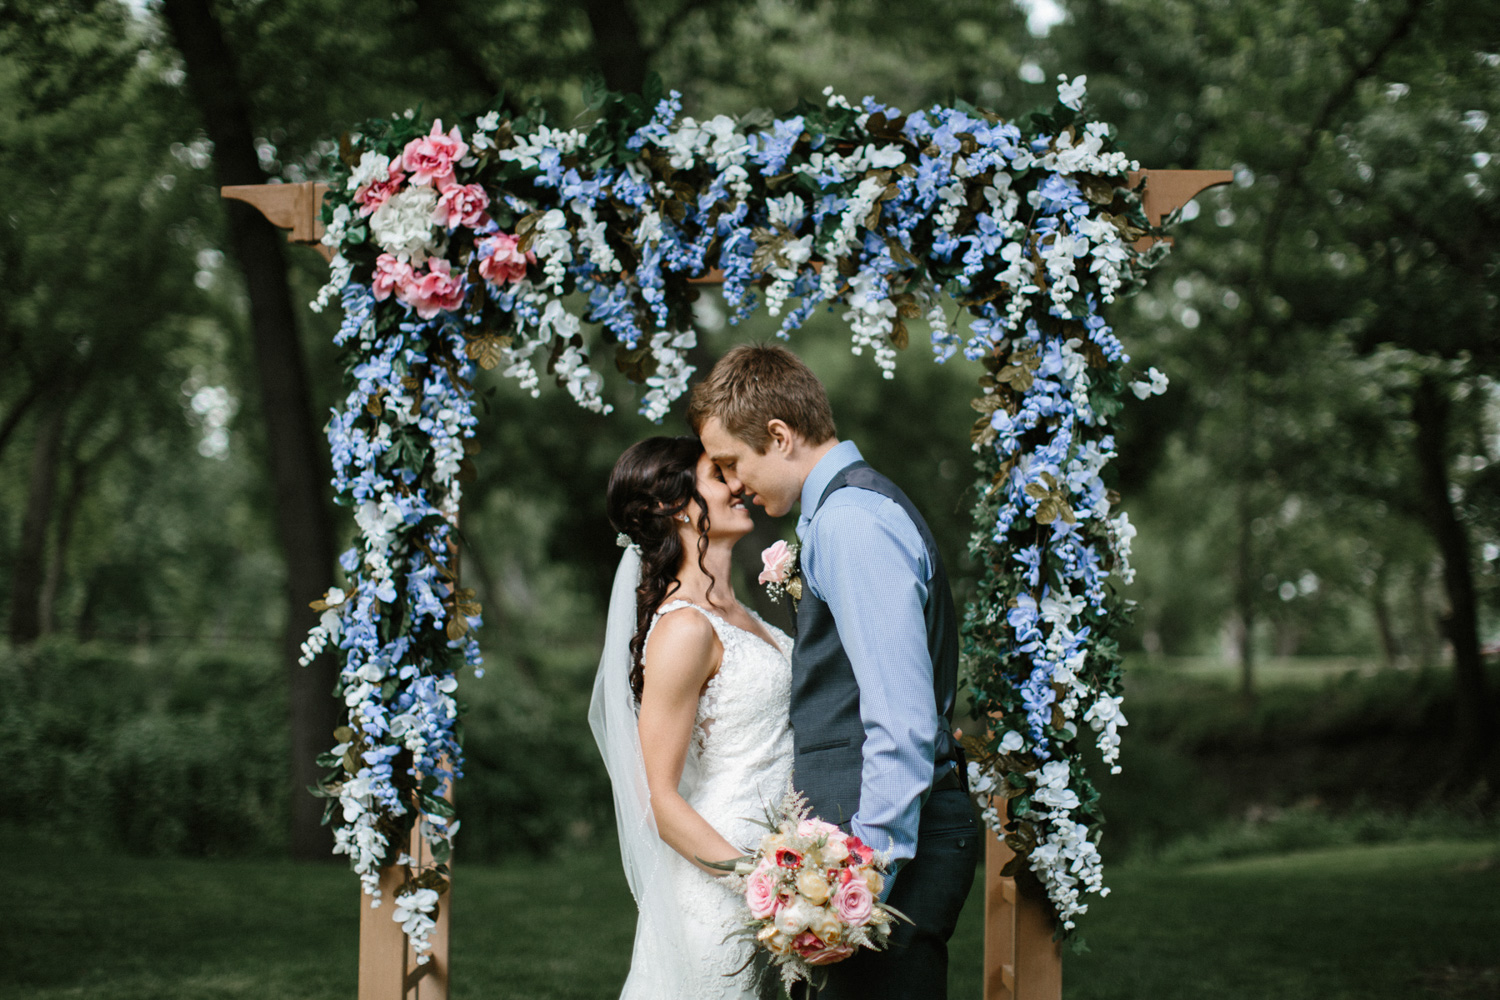 Outdoor_Wedding_SiouxFalls_MaryJoWegnerArboretum_Photographer_Calli&Jon_103.jpg